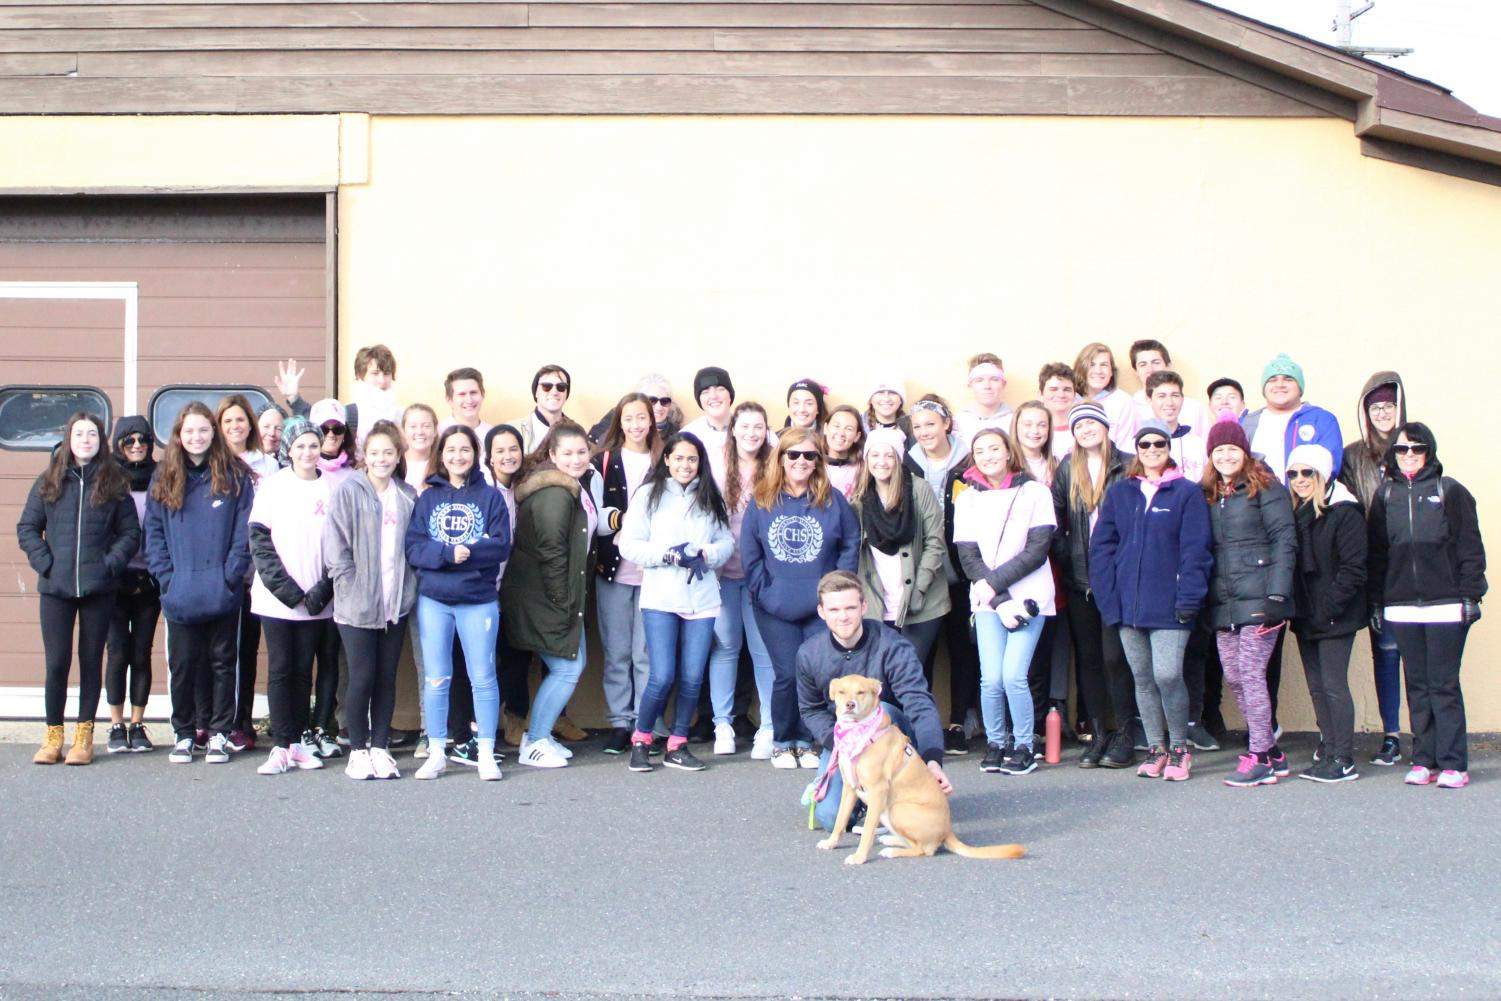 The National Honor Society brought 45 CHS team members to the Point Pleasant Beach Making Strides Against Breast Cancer Walk on Sunday, Oct. 21.